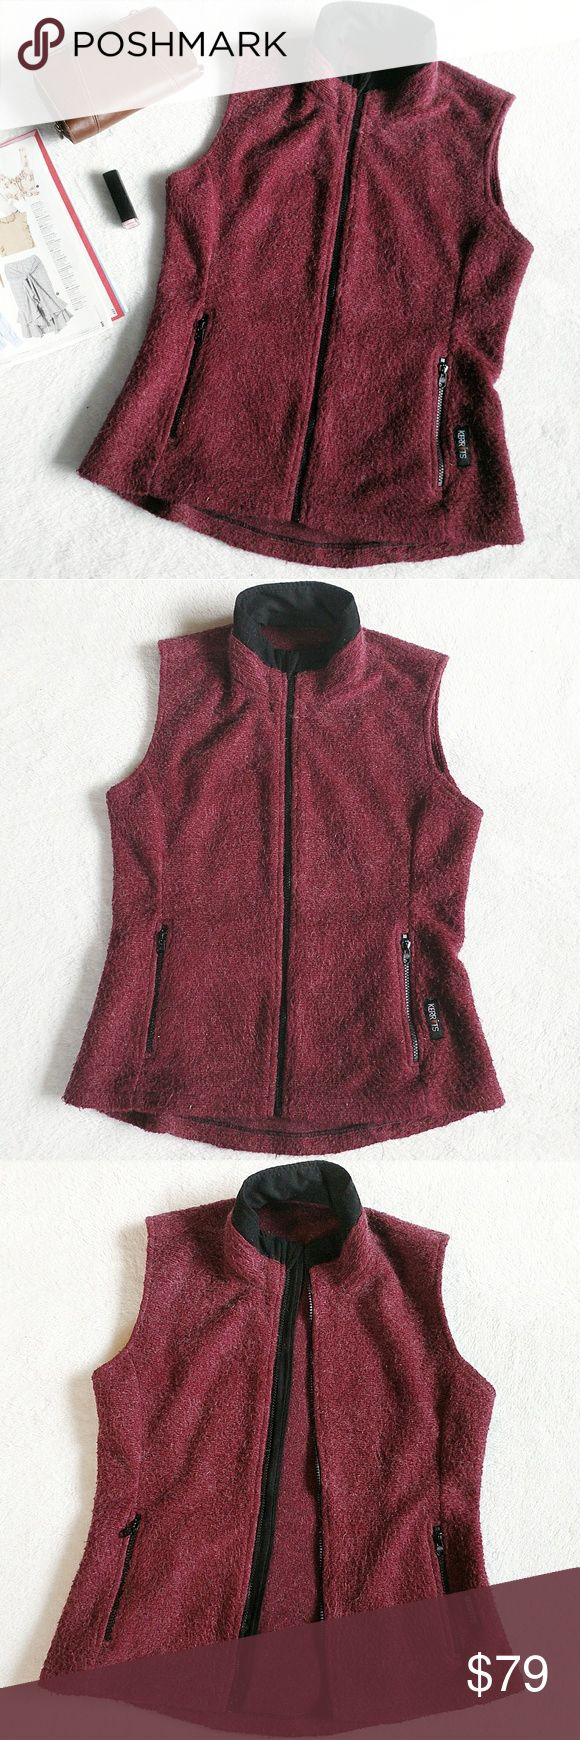 Kerrits Equestrian Fuzzy Maroon Vest Maroon Fuzzy Vest by Kerrits.  Has soft, fuzzy maroon fabric with occasional lighter threads.  Has a black exposed zipper down the front, at the neck there is a flap of fabric that hides the zipper pull   Has a black high neck color   Has two pockets with black exposed zippers  Made to be an equestrian, horse riding vest but would also be good for hiking, travelling or as a fashion vest   Zipper pulls on each zipper have some wearing, shown in the last…